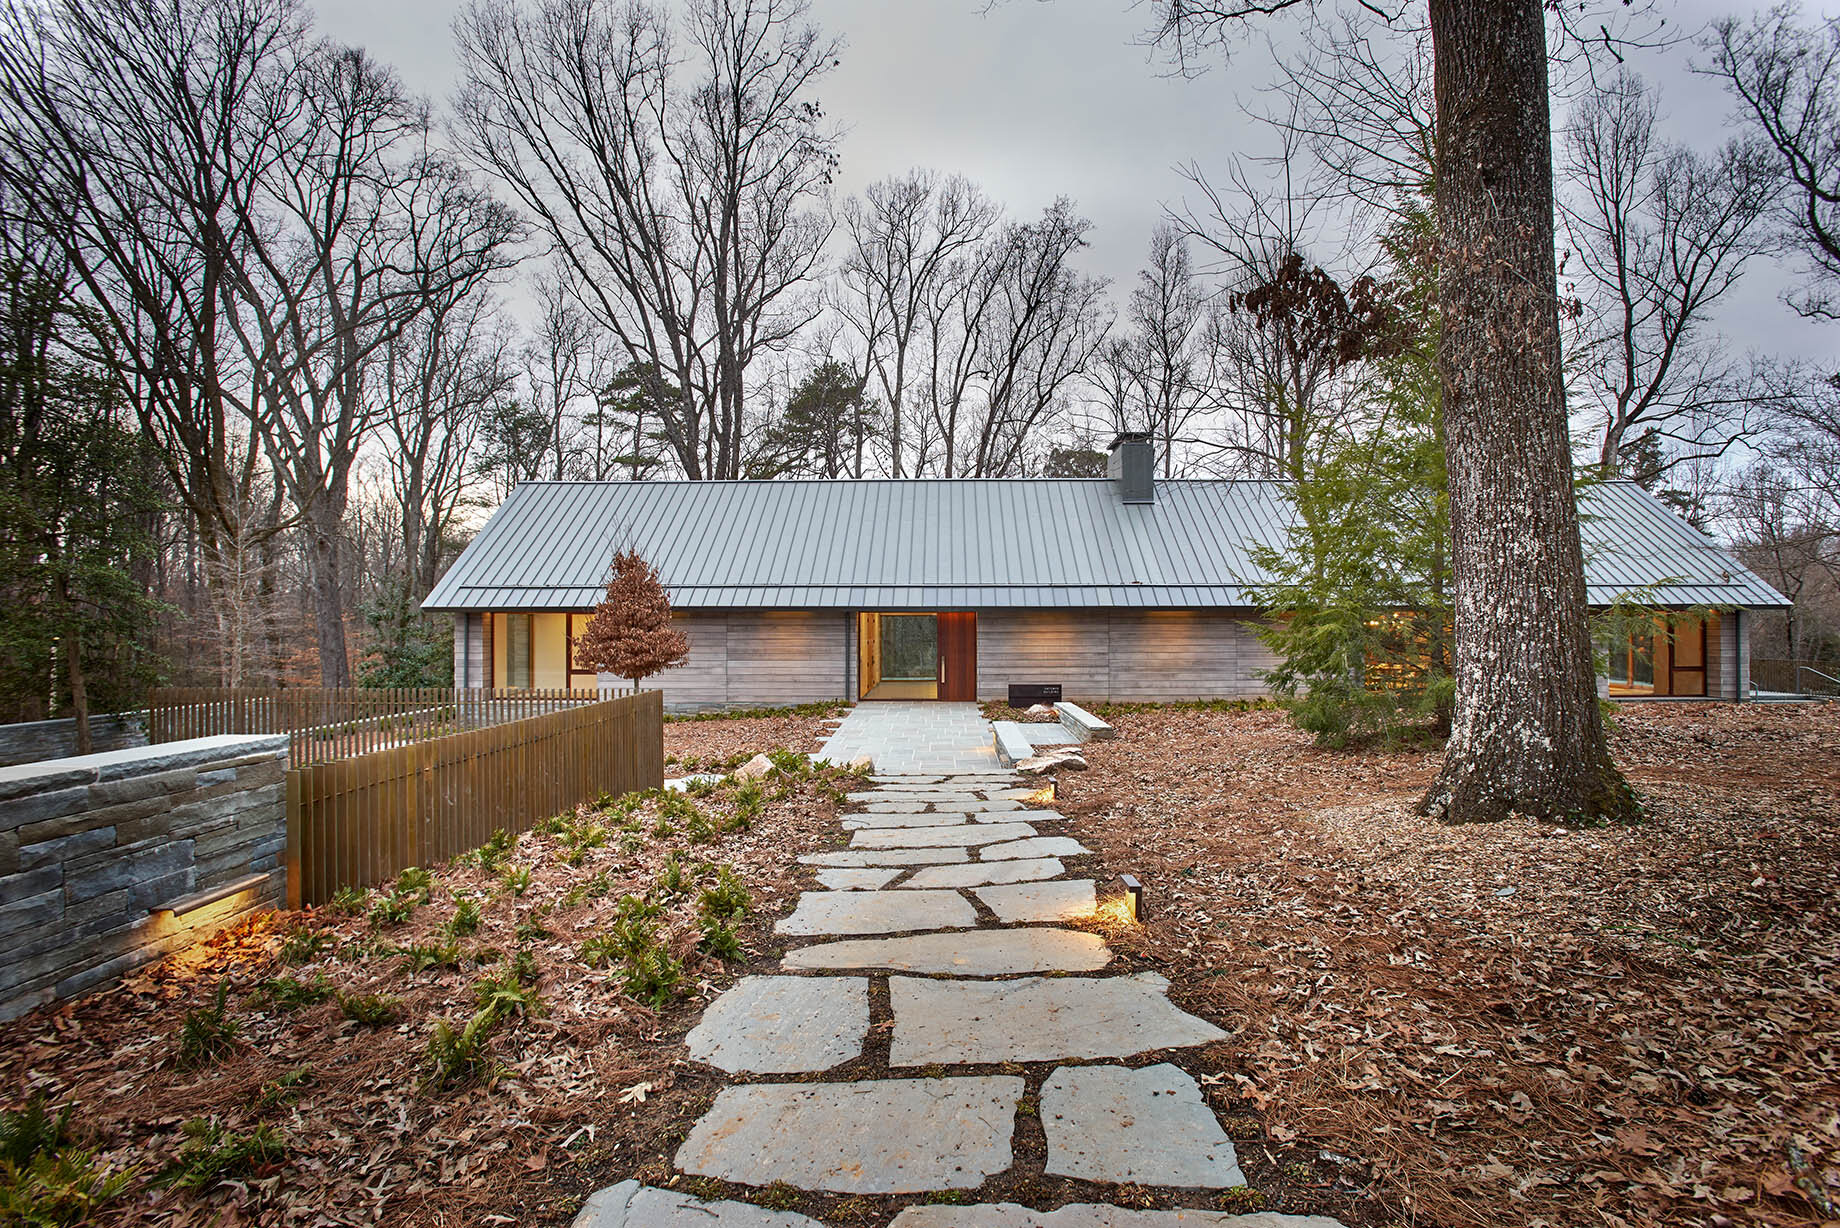 Loghaven offers artist residencies in the woodlands of Tennessee. Deadline: July 15